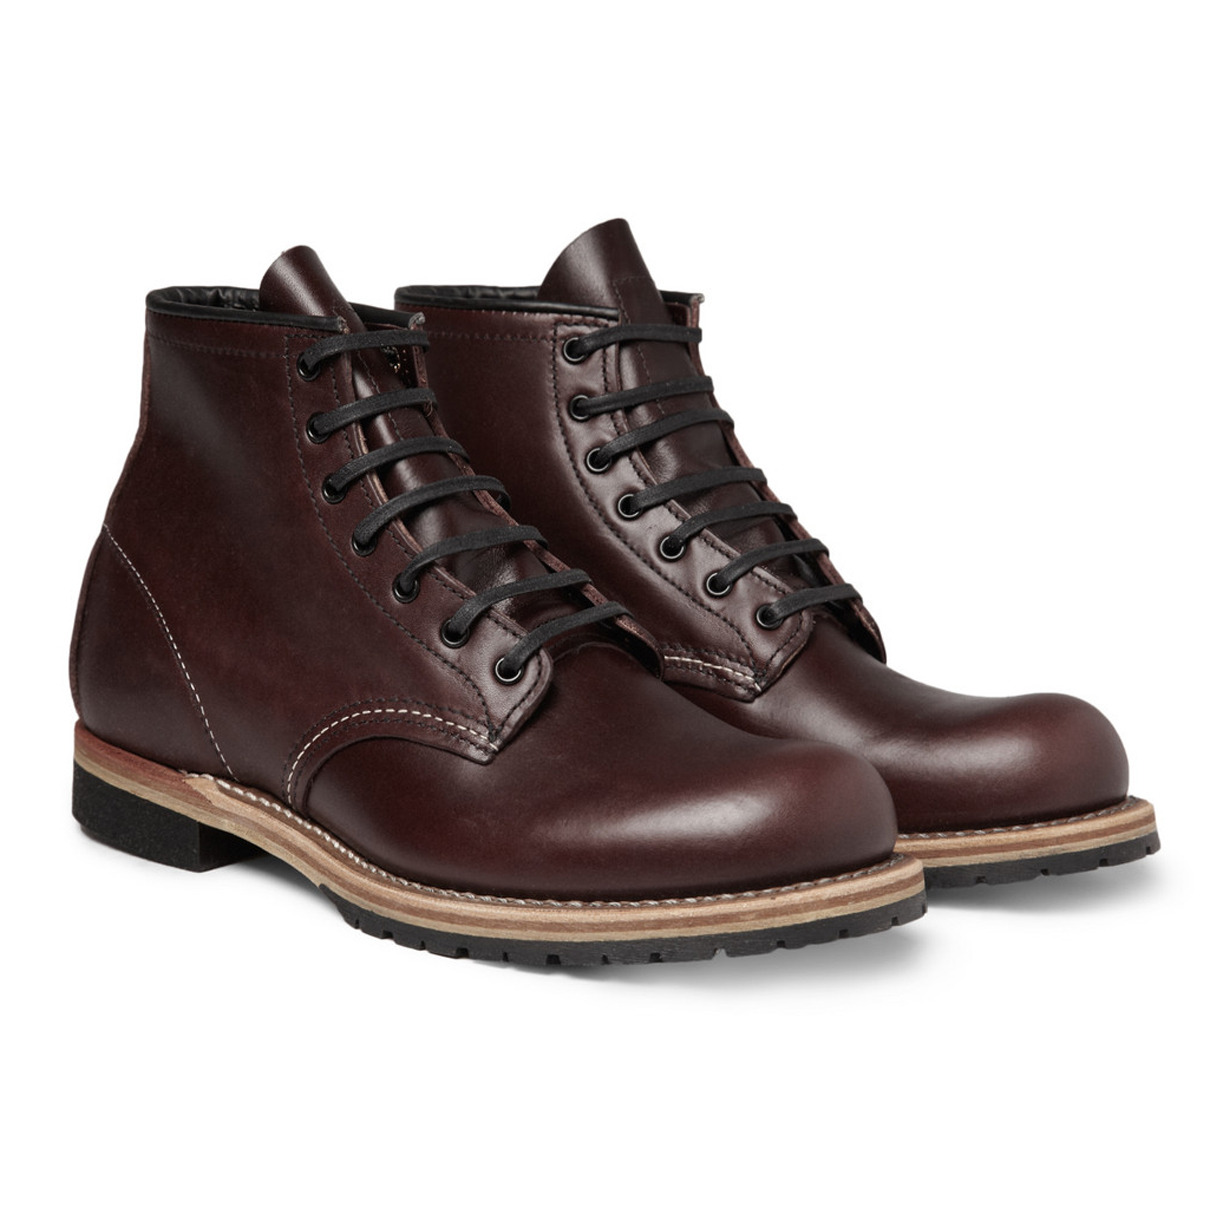 Jump feet first into fall with a pair of renowned #REDWING boots, new on site tomorrow